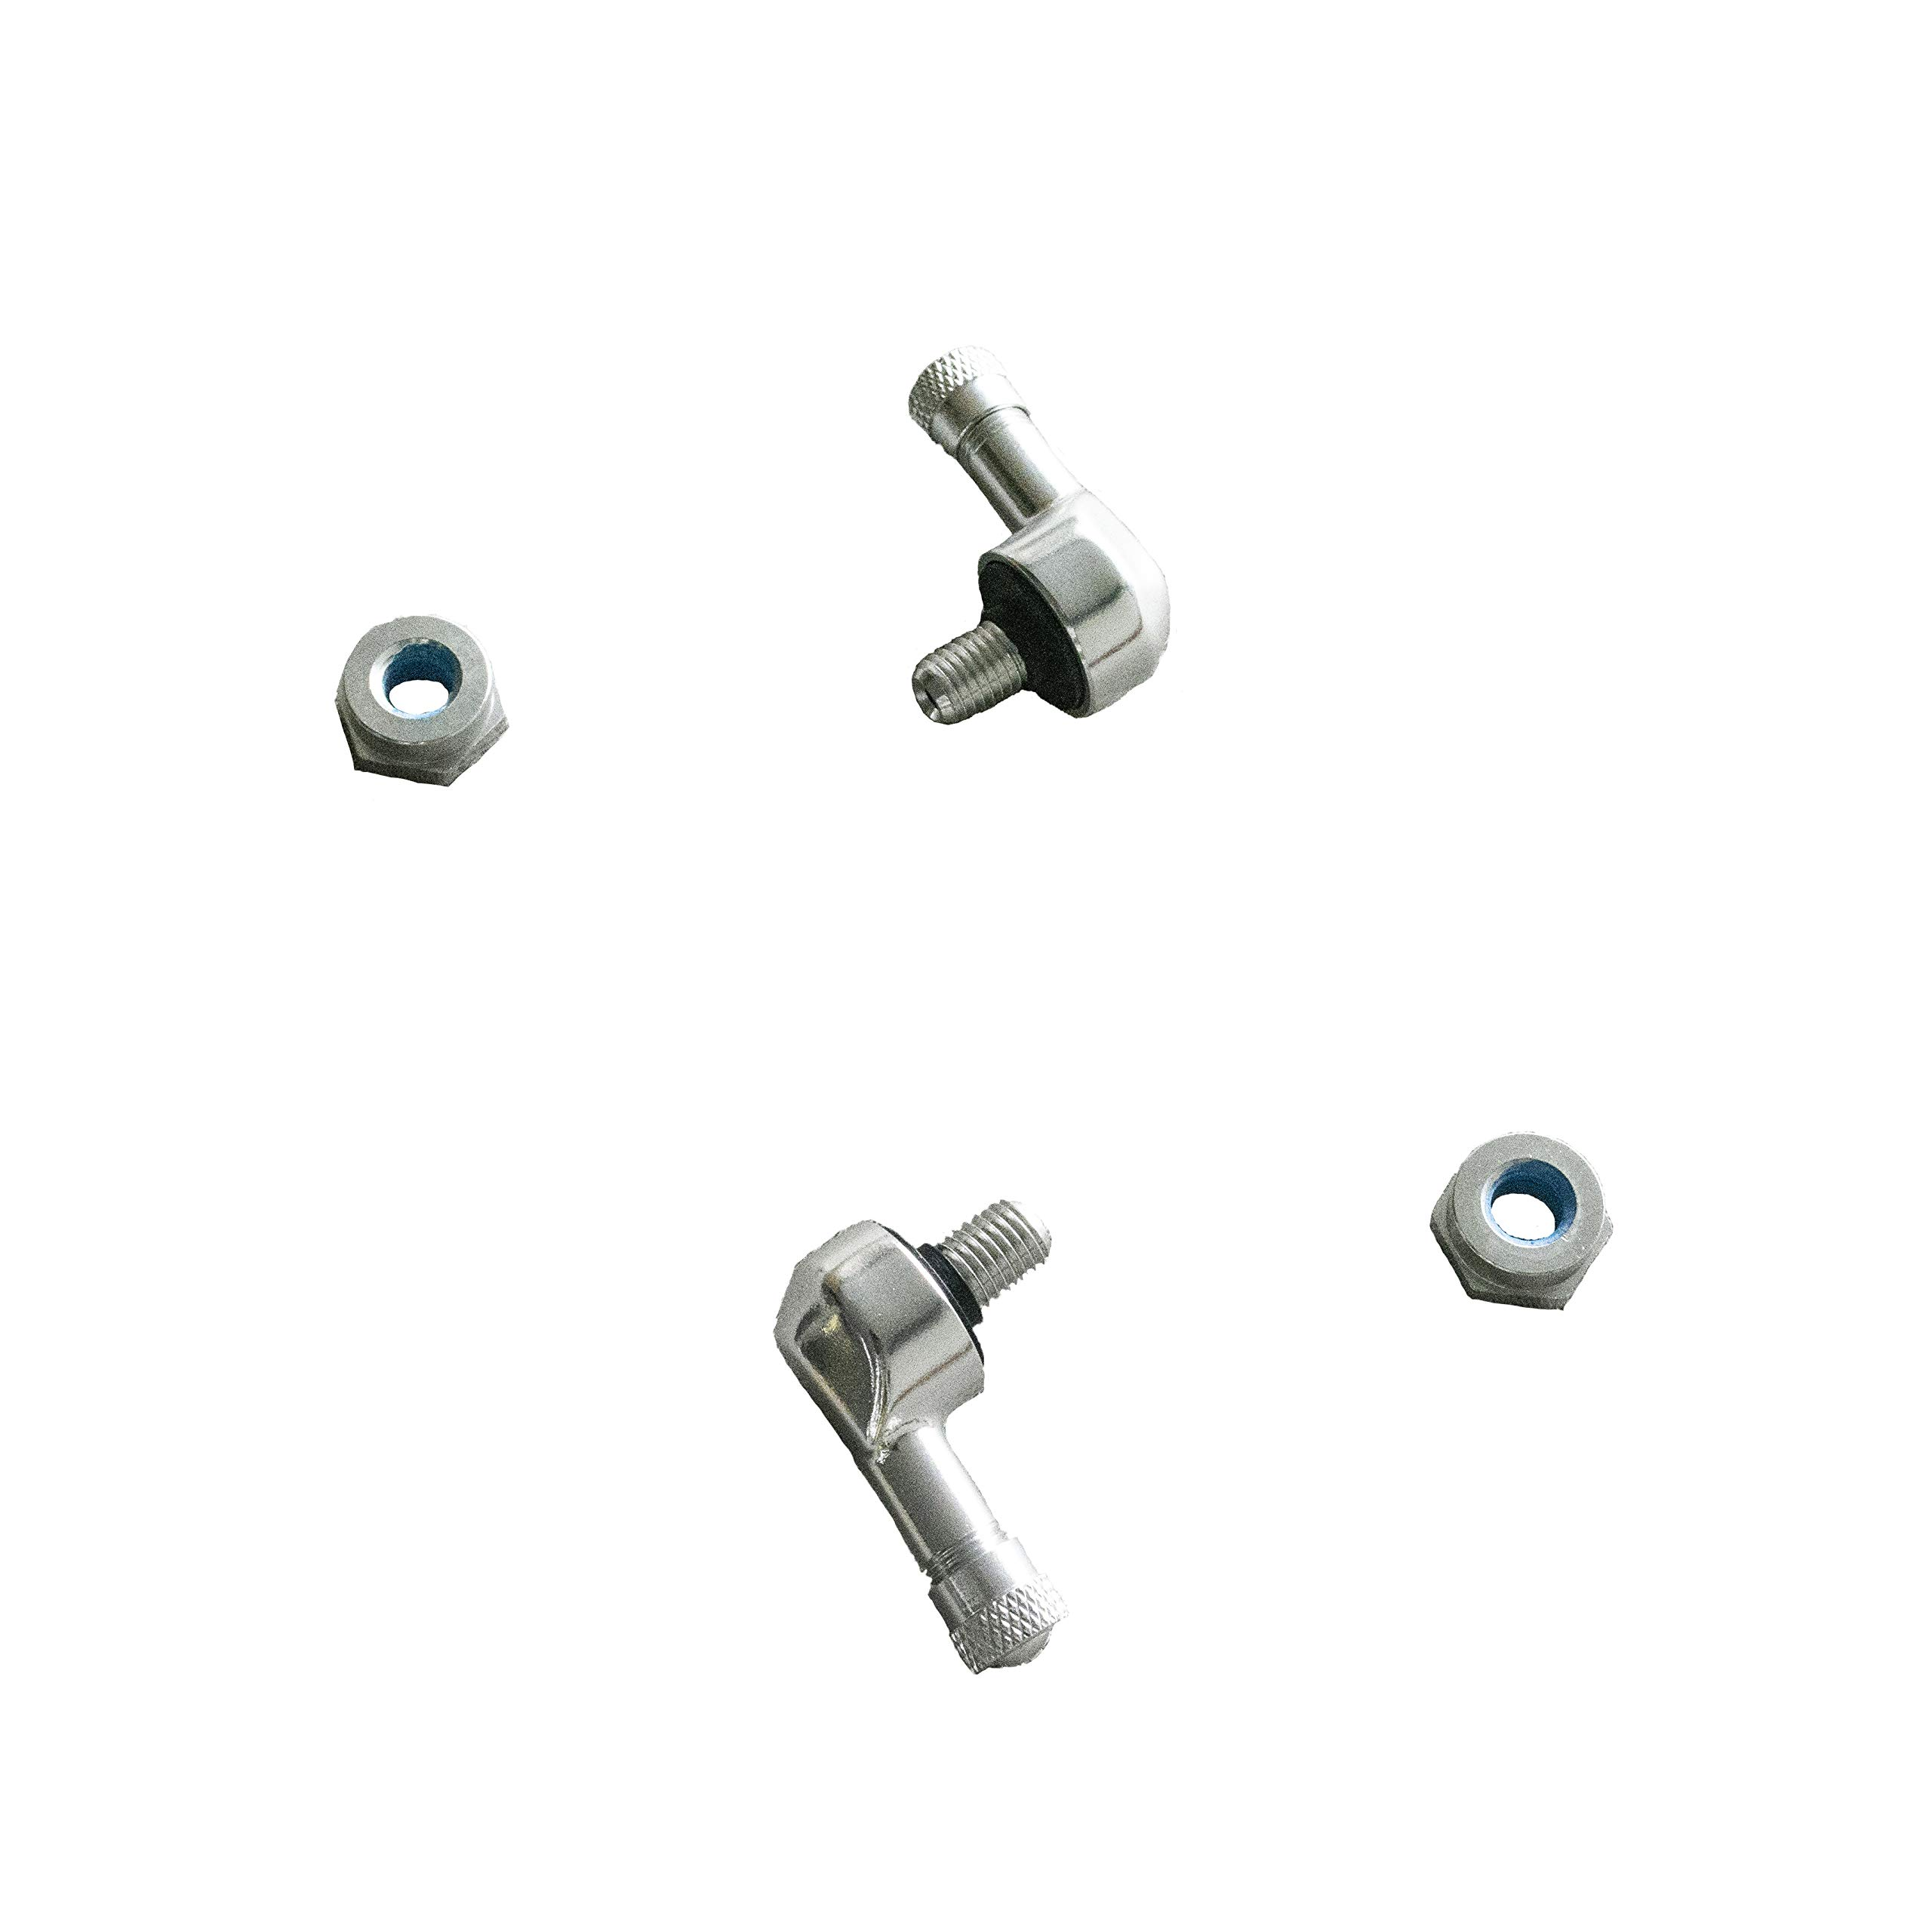 NEX Performance Angled forged Alloy Valve Stem with Lock Nut, 0.357in (8.3mm) Size, Silver by NEX Performance